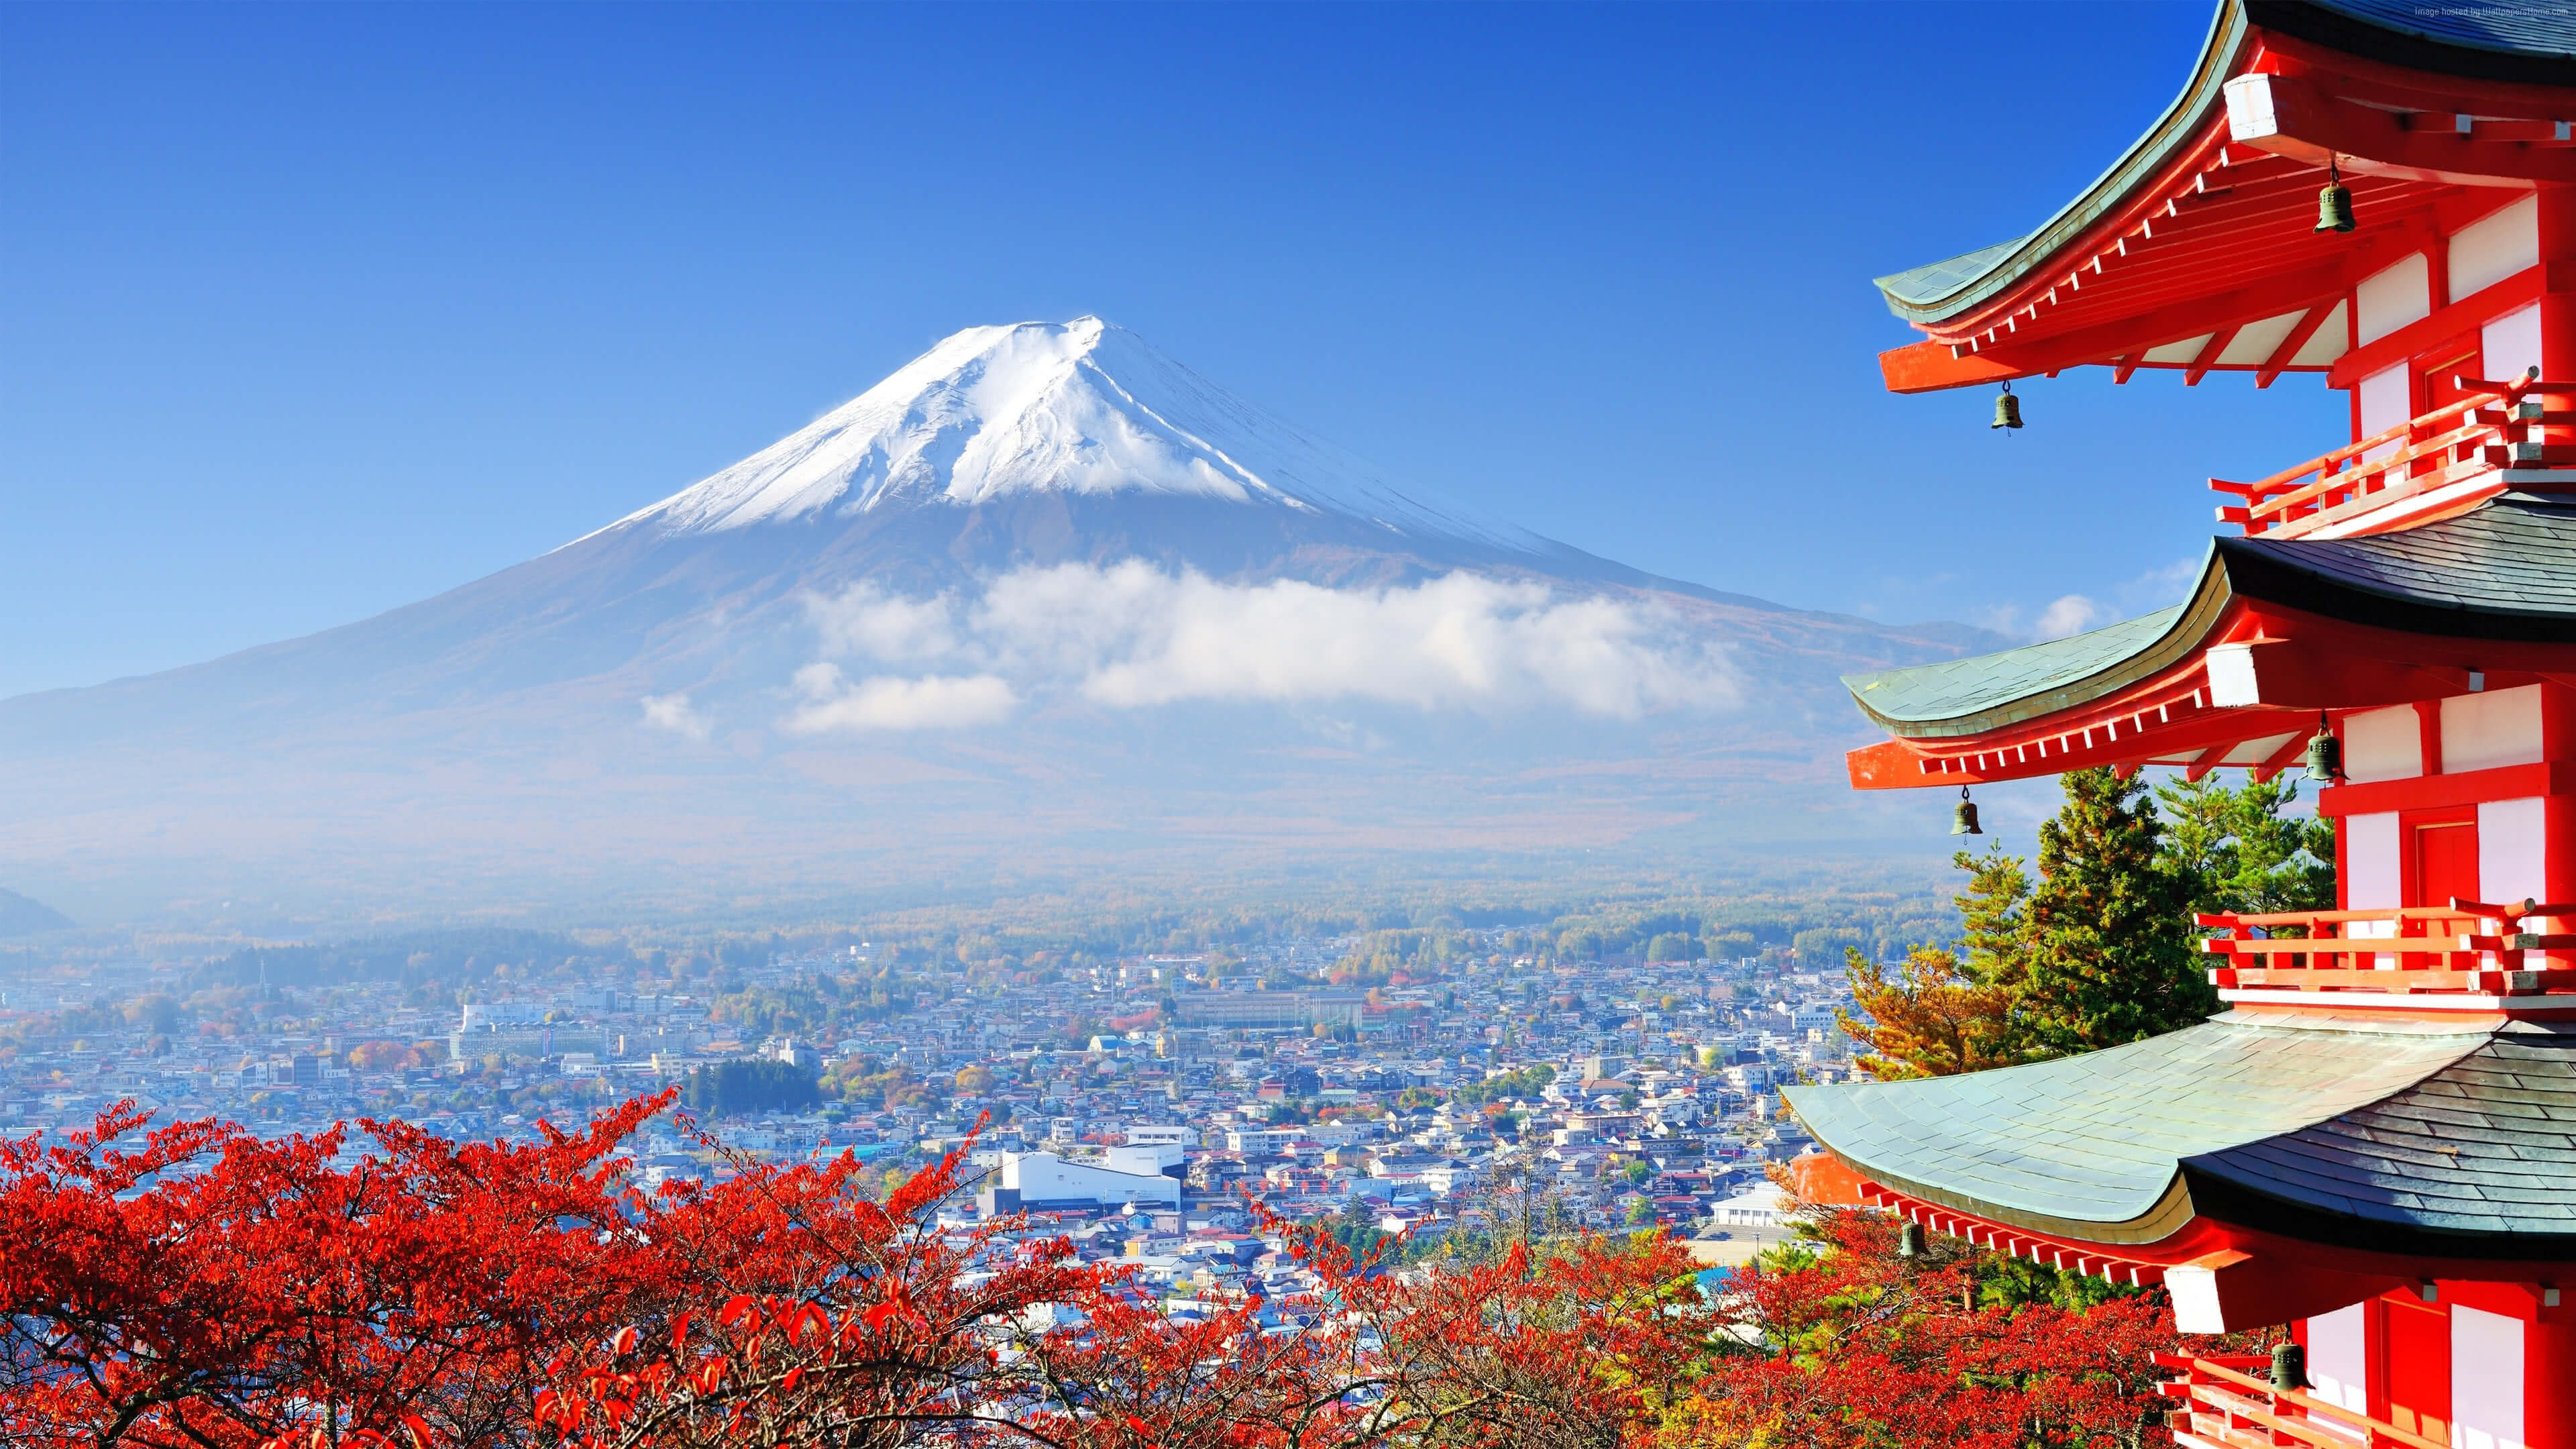 Mt Fuji 4K Wallpapers   Top Mt Fuji 4K Backgrounds 3840x2160